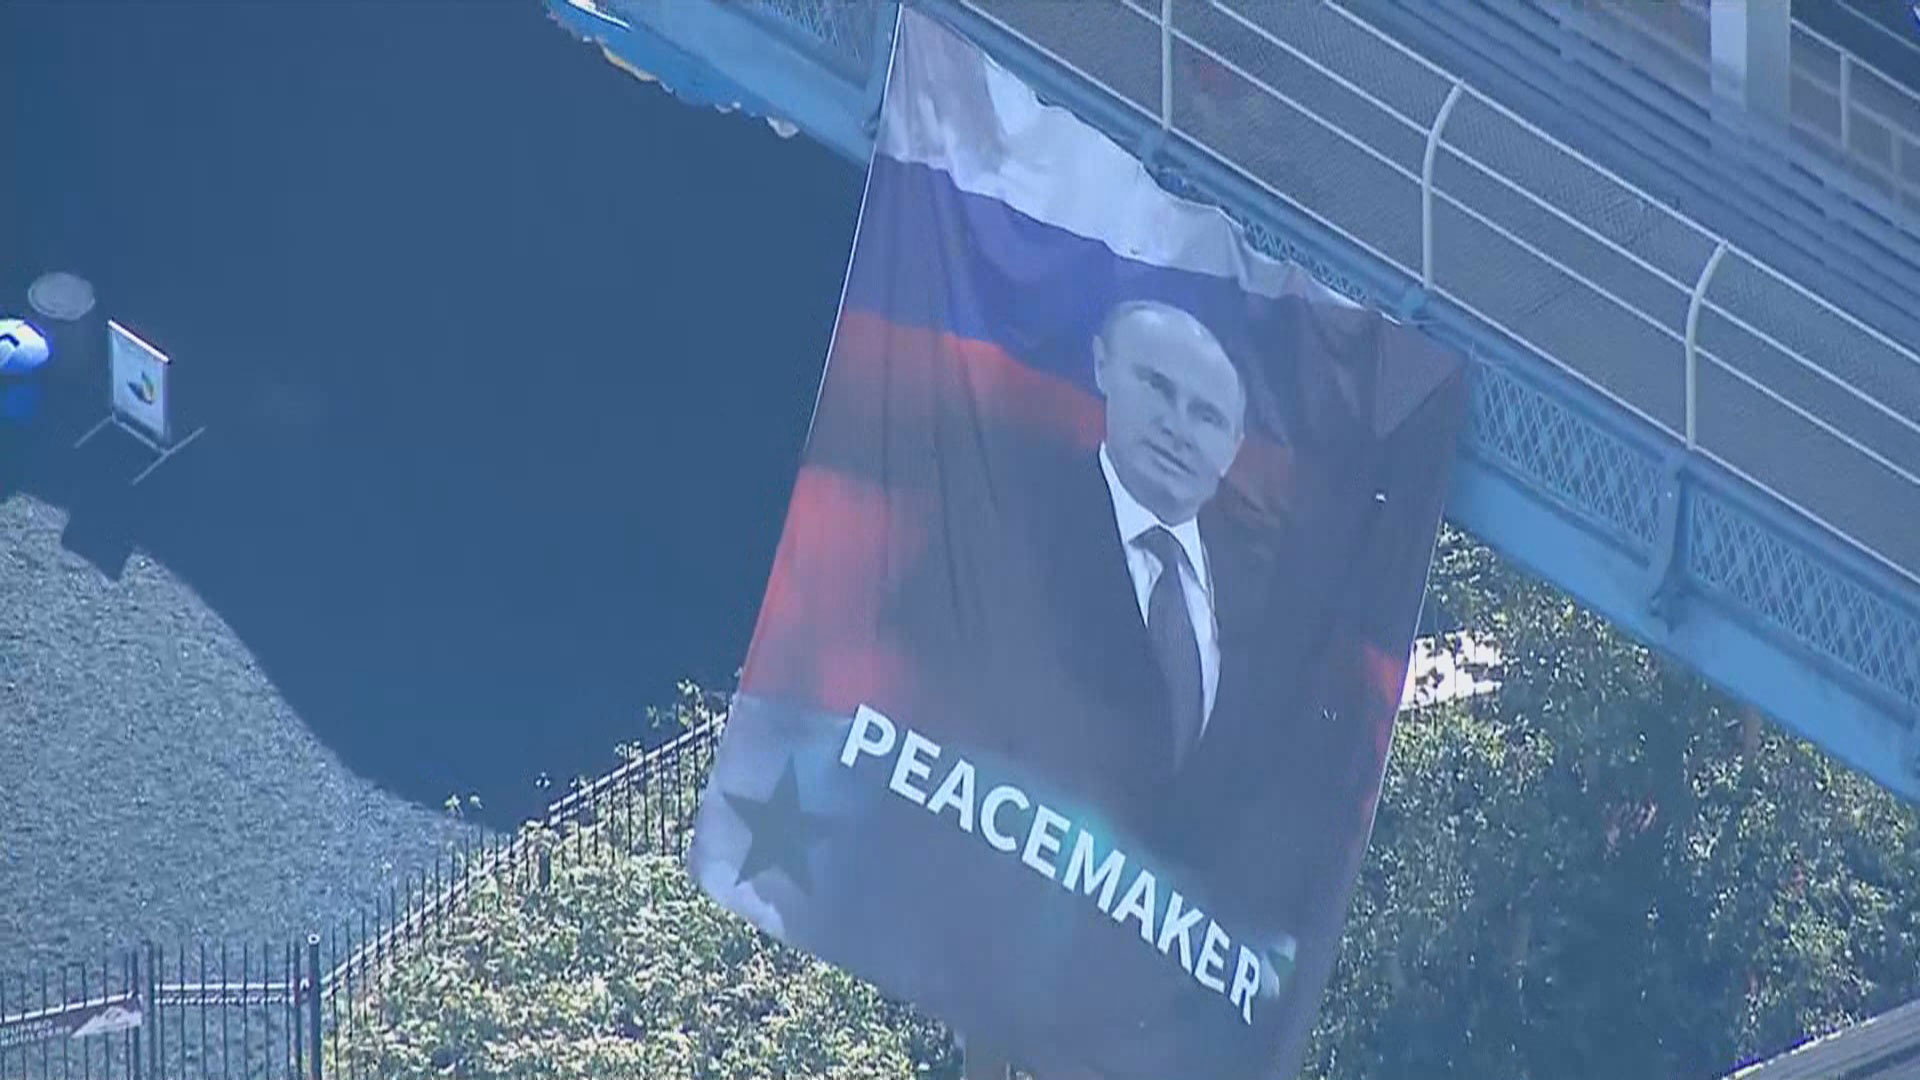 Banner calling Vladimir Putin a 'peacemaker' hangs from Manhattan ...